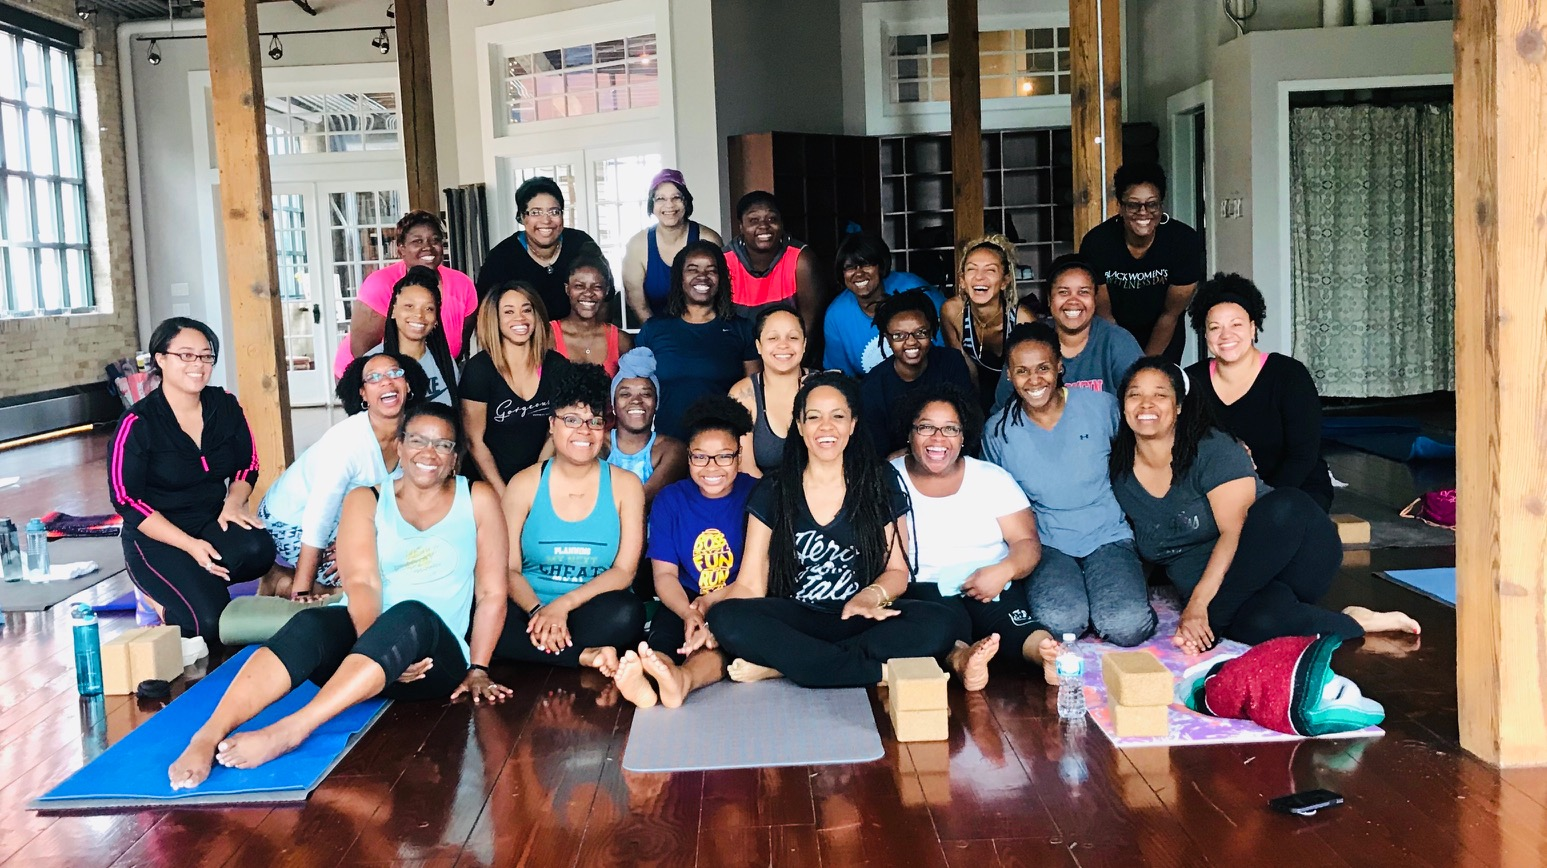 group of smiling women in yoga studio